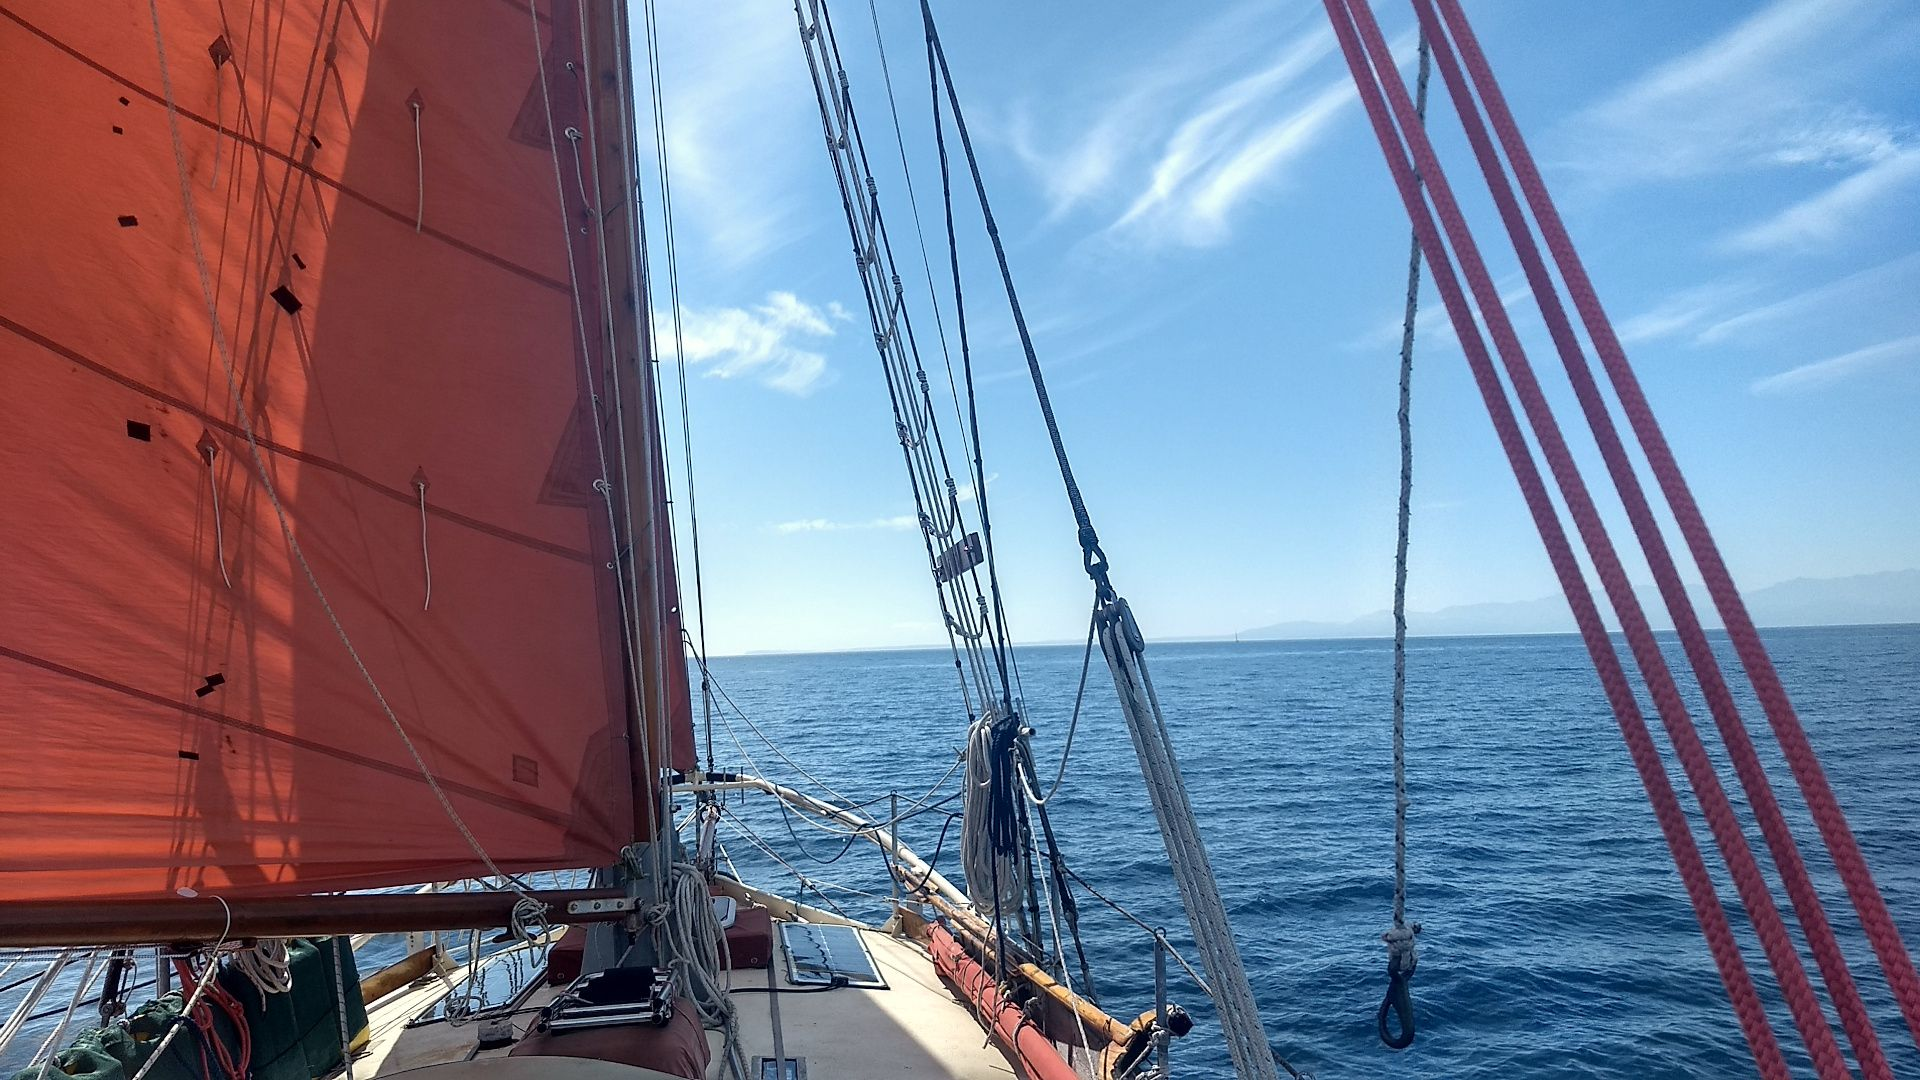 A view from the cockpit. A rust-colored sail fills the left-third of the image. Lines and rigging cross the right side. The water is calm and the sky is blue with wispy clouds.